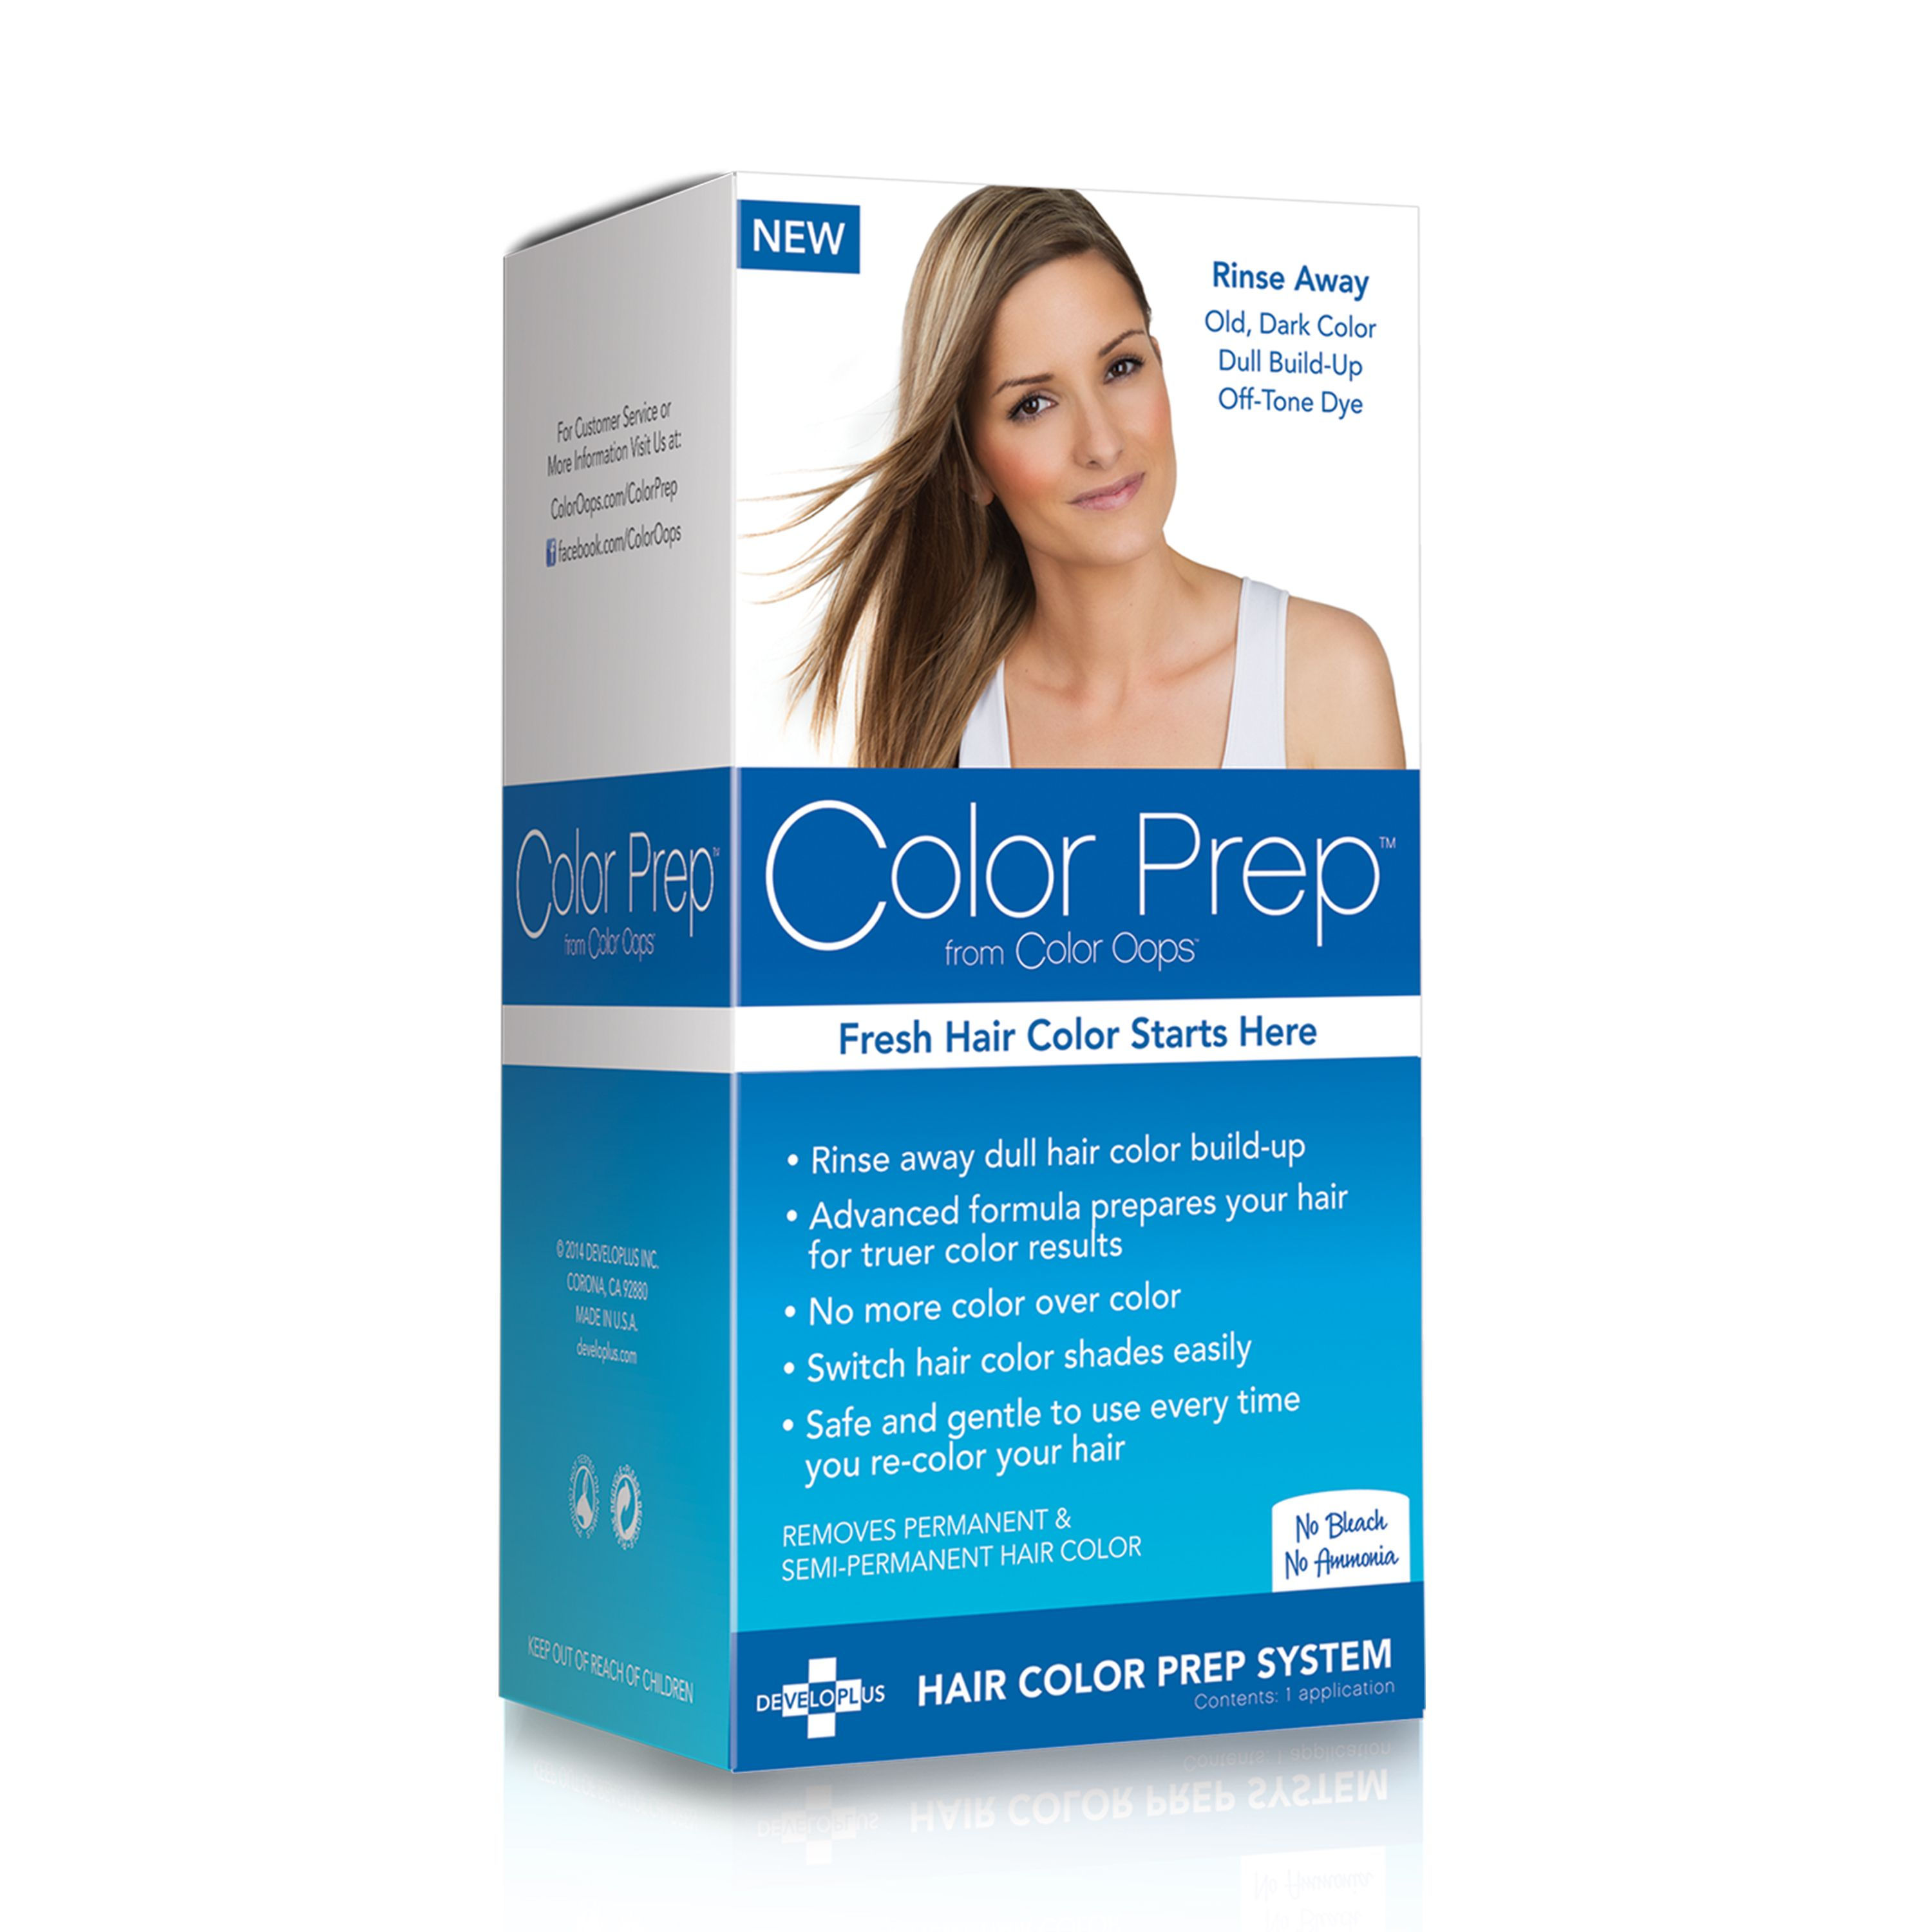 Color Prep from Color Oops Hair Color Build-Up Treatment